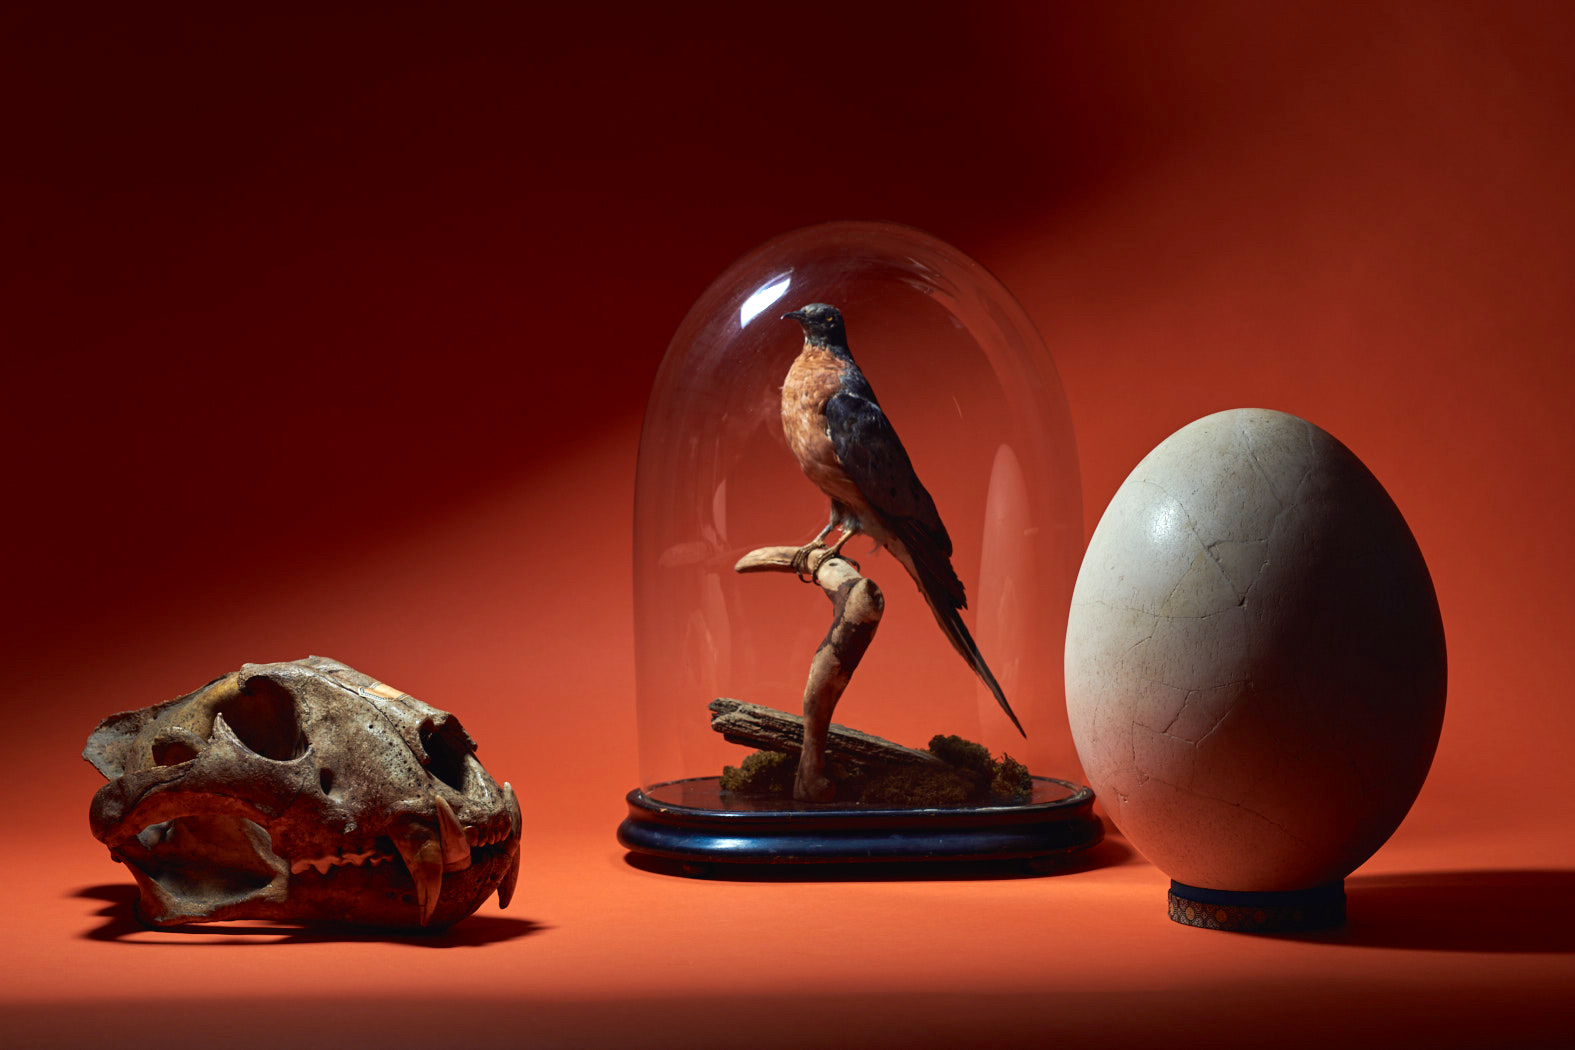 Christian Link: Wunderkammer - Collecting the World